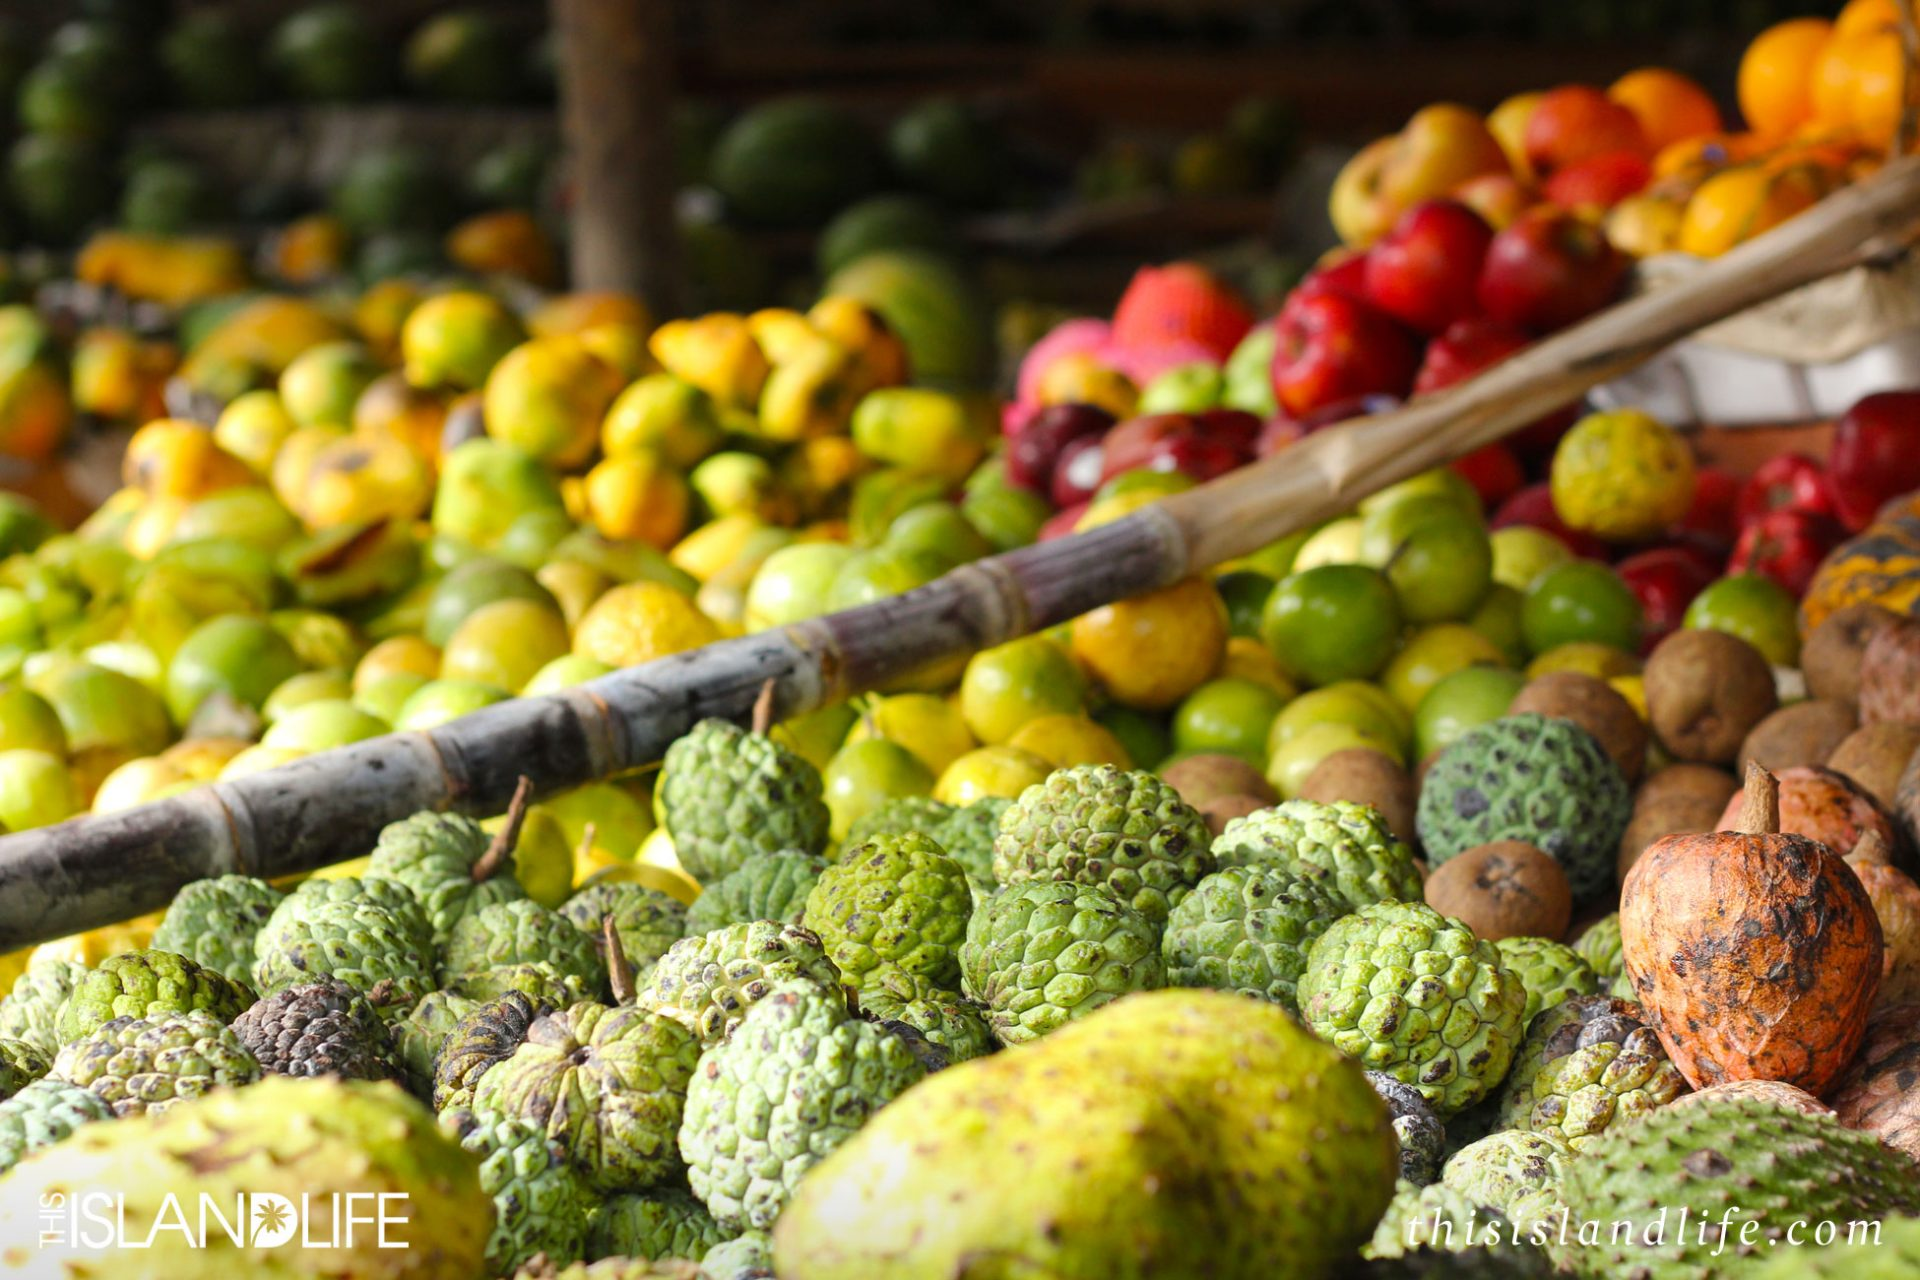 This Island Life | Tropical fruit in Sri Lanka